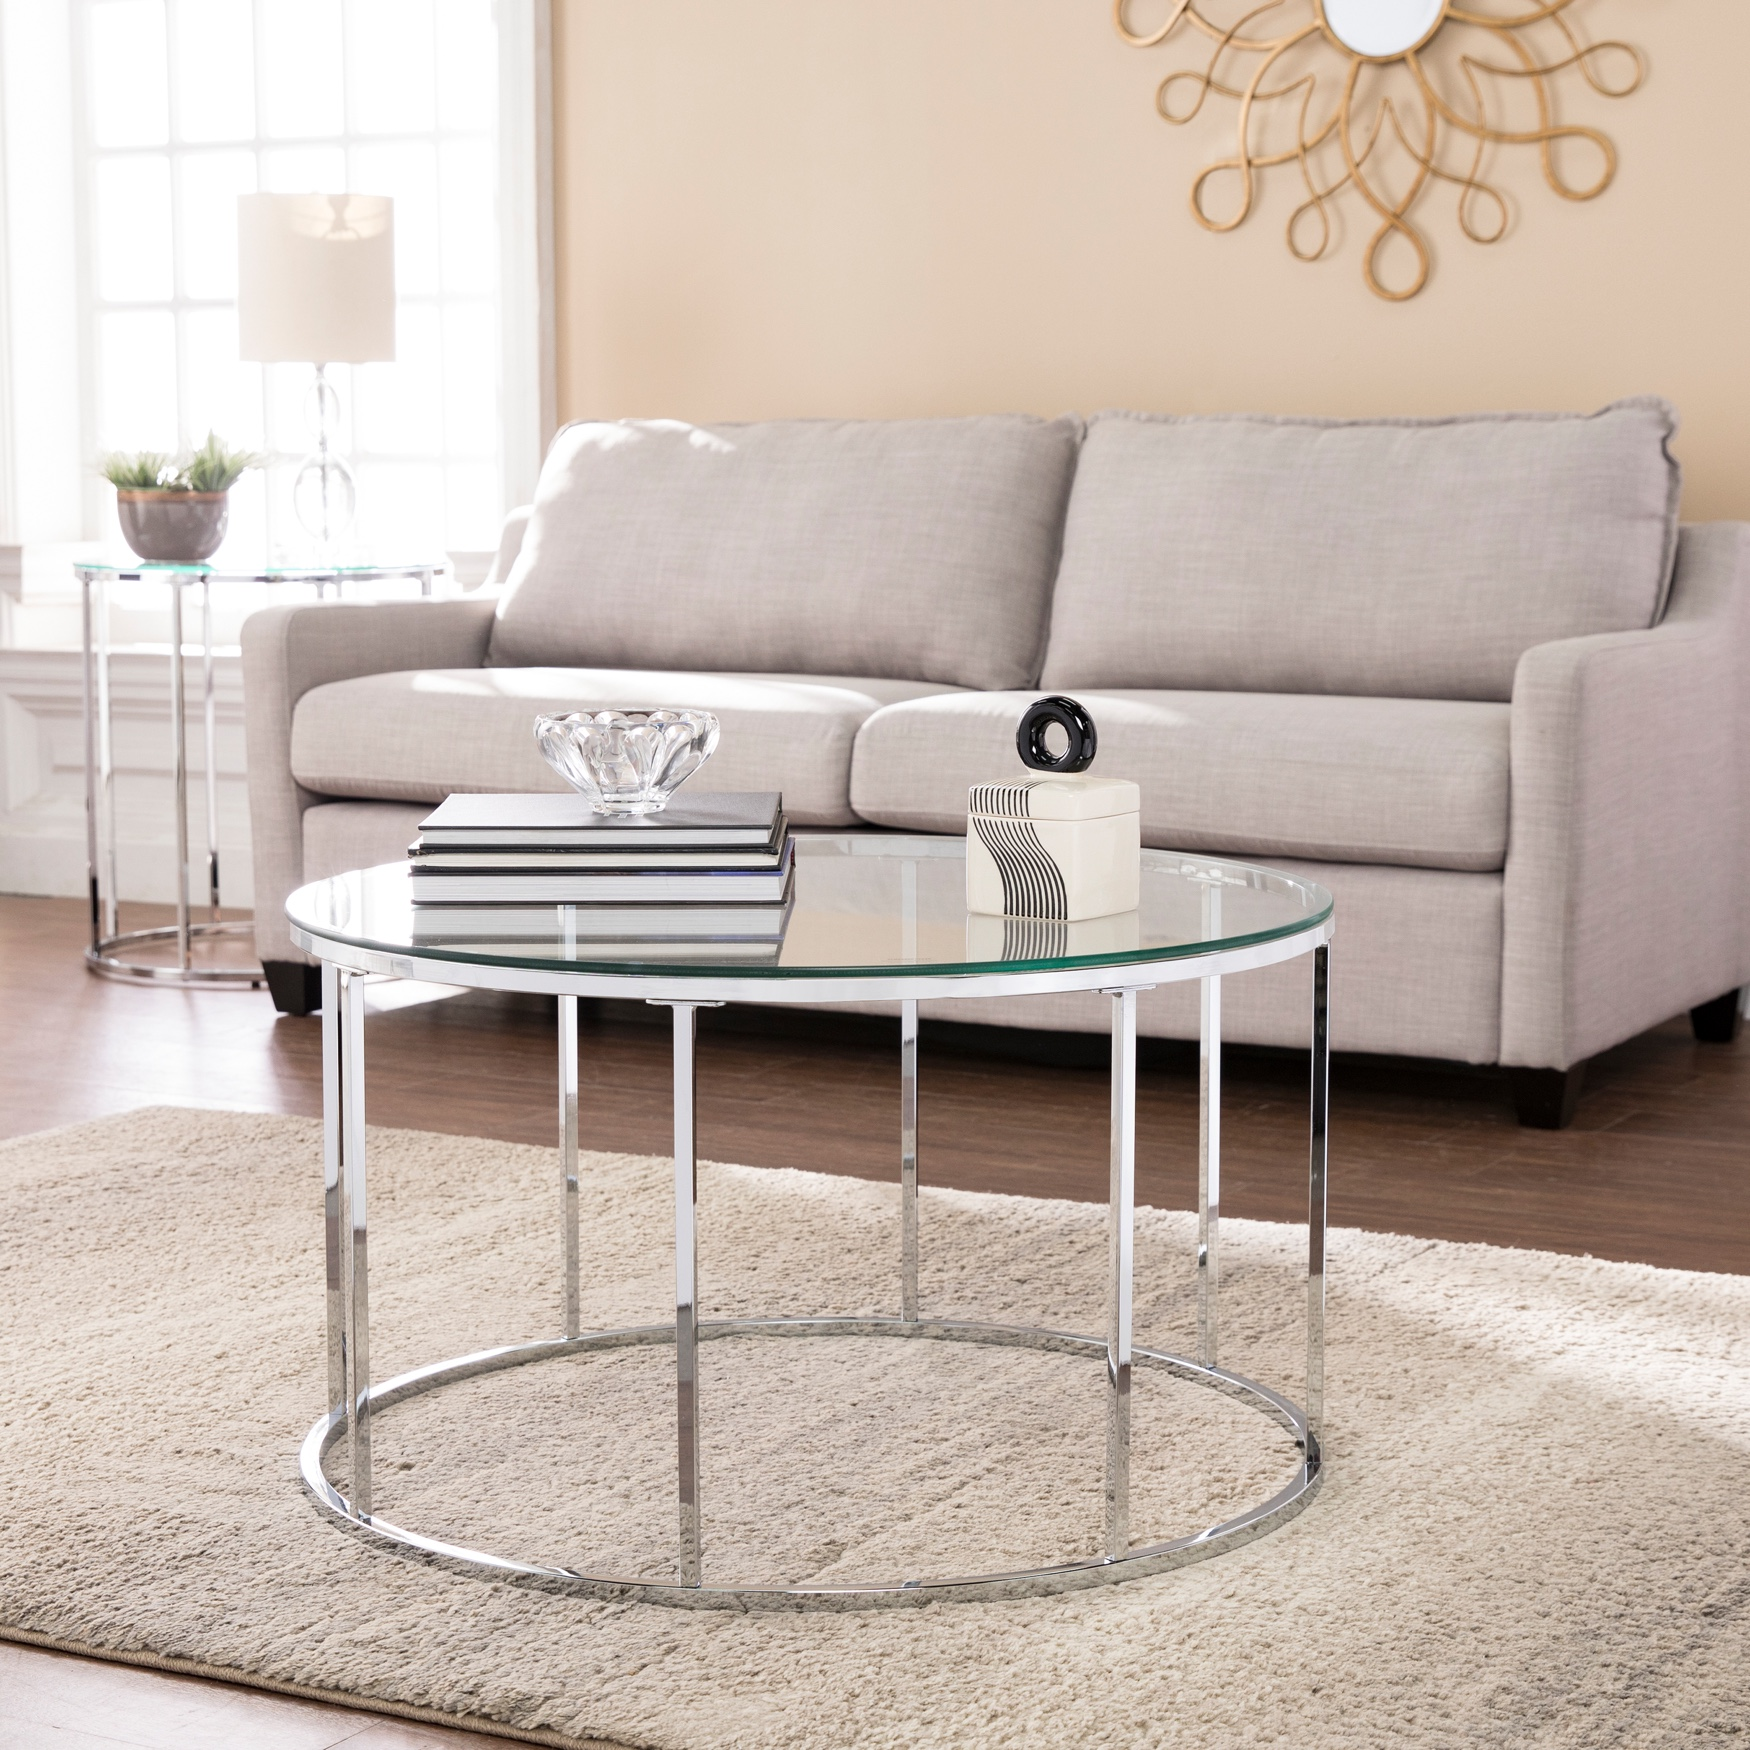 Cranstyn Round Cocktail Table with Glass Top, CHROME